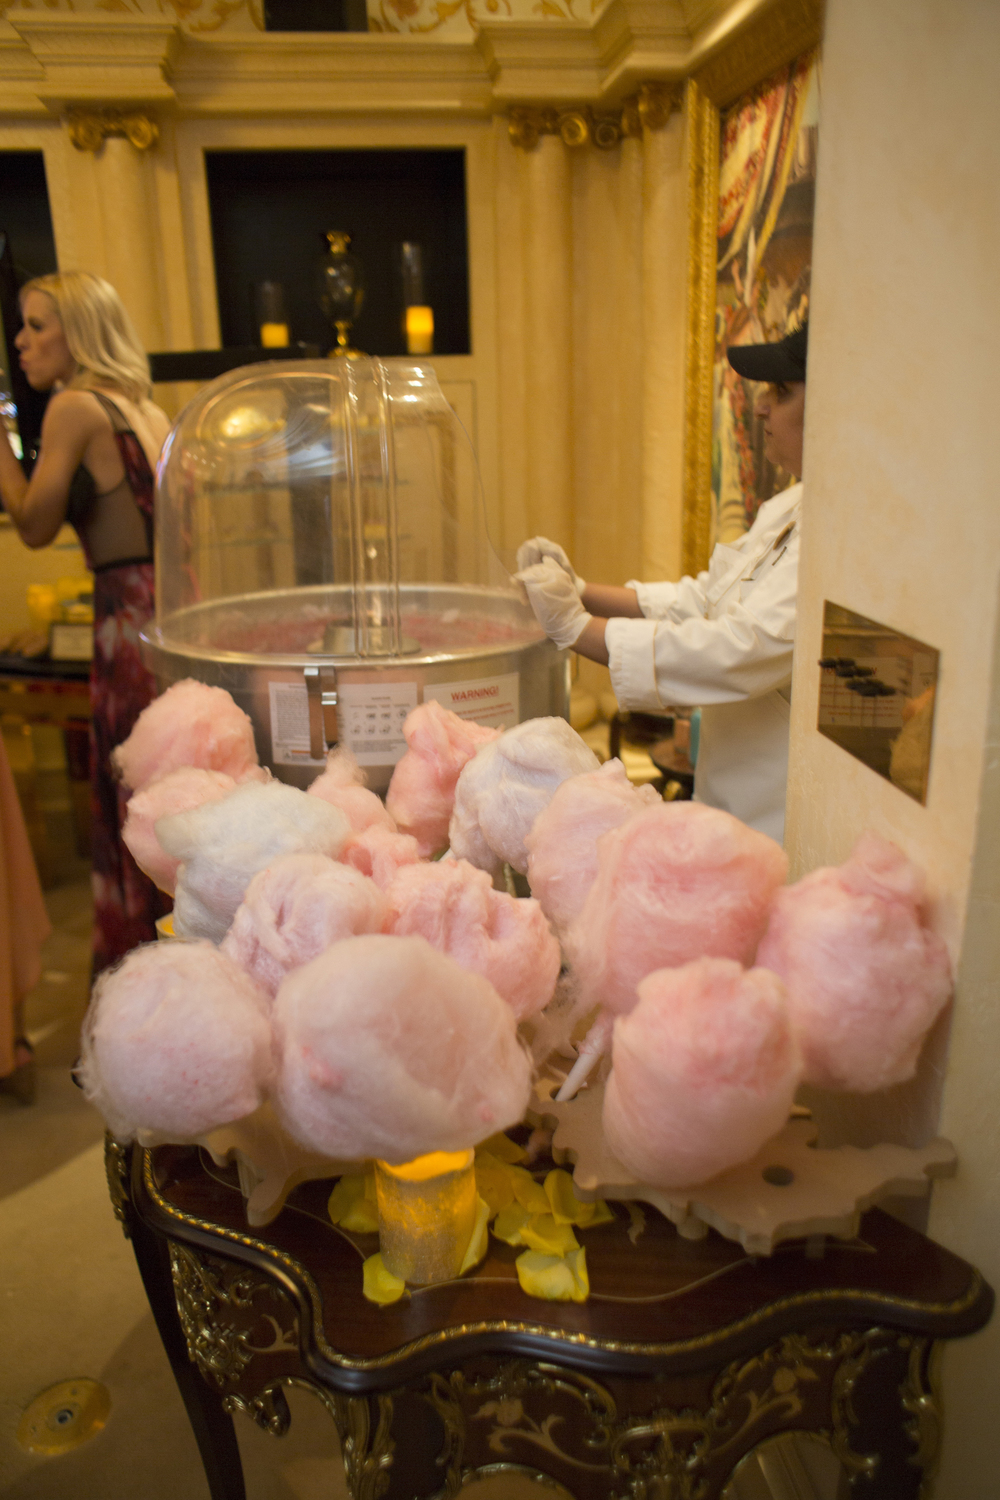 Cotton Candy is always a late night hit!   ewlyweds Brian Sauls and Chris Mancini at their same-sex wedding in Las Vegas.  The vintage Vegas themed event was hosted in the Verona Suite of The Westgate.   Venue -  The Westgate   |  Las Vegas Wedding Planner & Event Design by  Andrea Eppolito   |  Photography by  AltF Photography   |  Videography by  Something New Films   |  Floral and Decor by  DBD Vegas   |  Live Art by  The Girl Who Drew You   |  Stationery by  Paper & Home